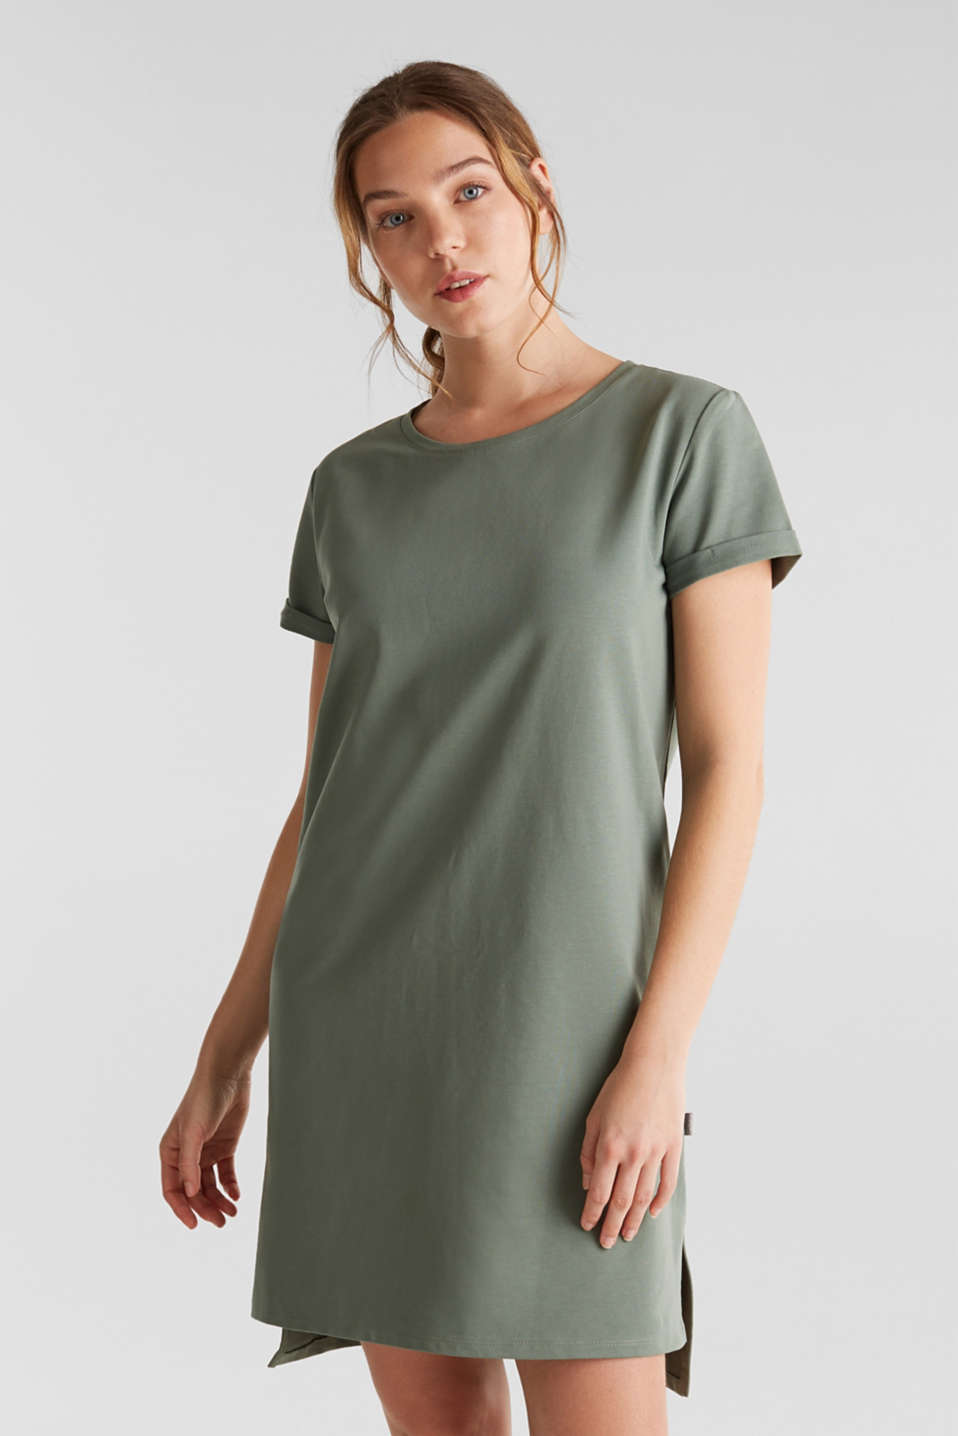 Esprit - Loungewear dress made of stretch jersey